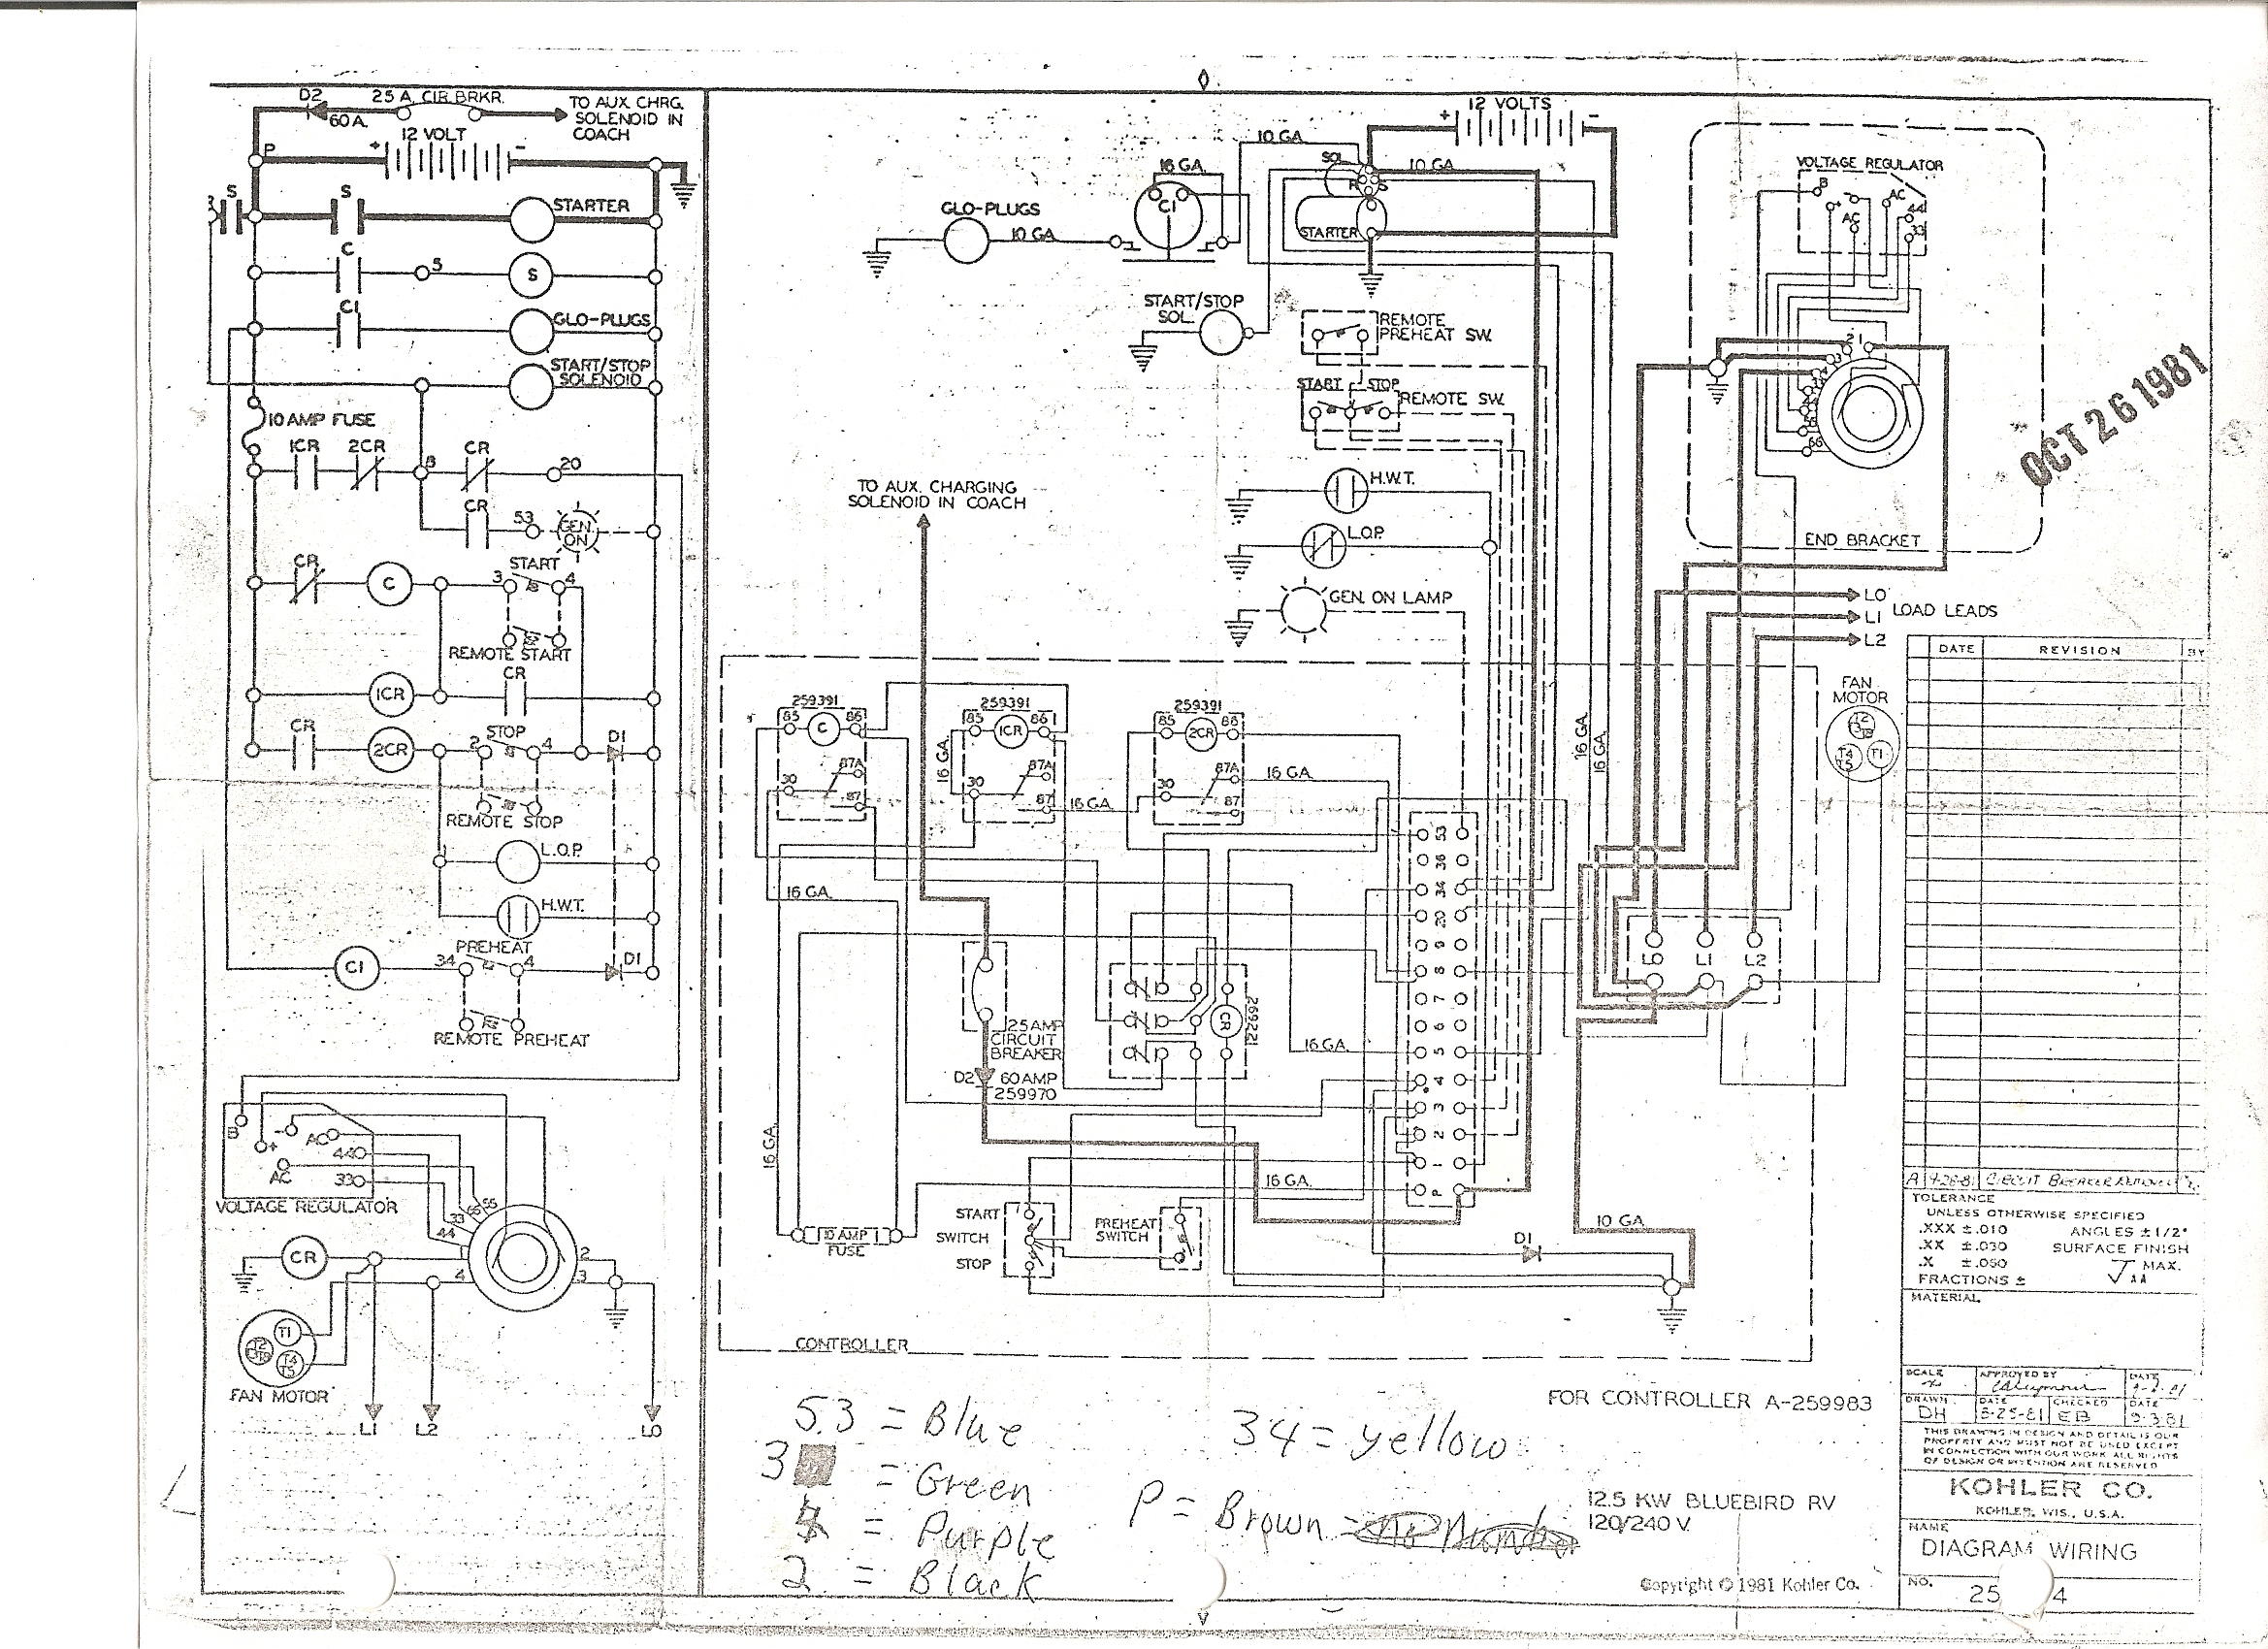 kohler wiring diagram manual kohler image wiring kohler genset wiring diagram schematics and wiring diagrams on kohler wiring diagram manual